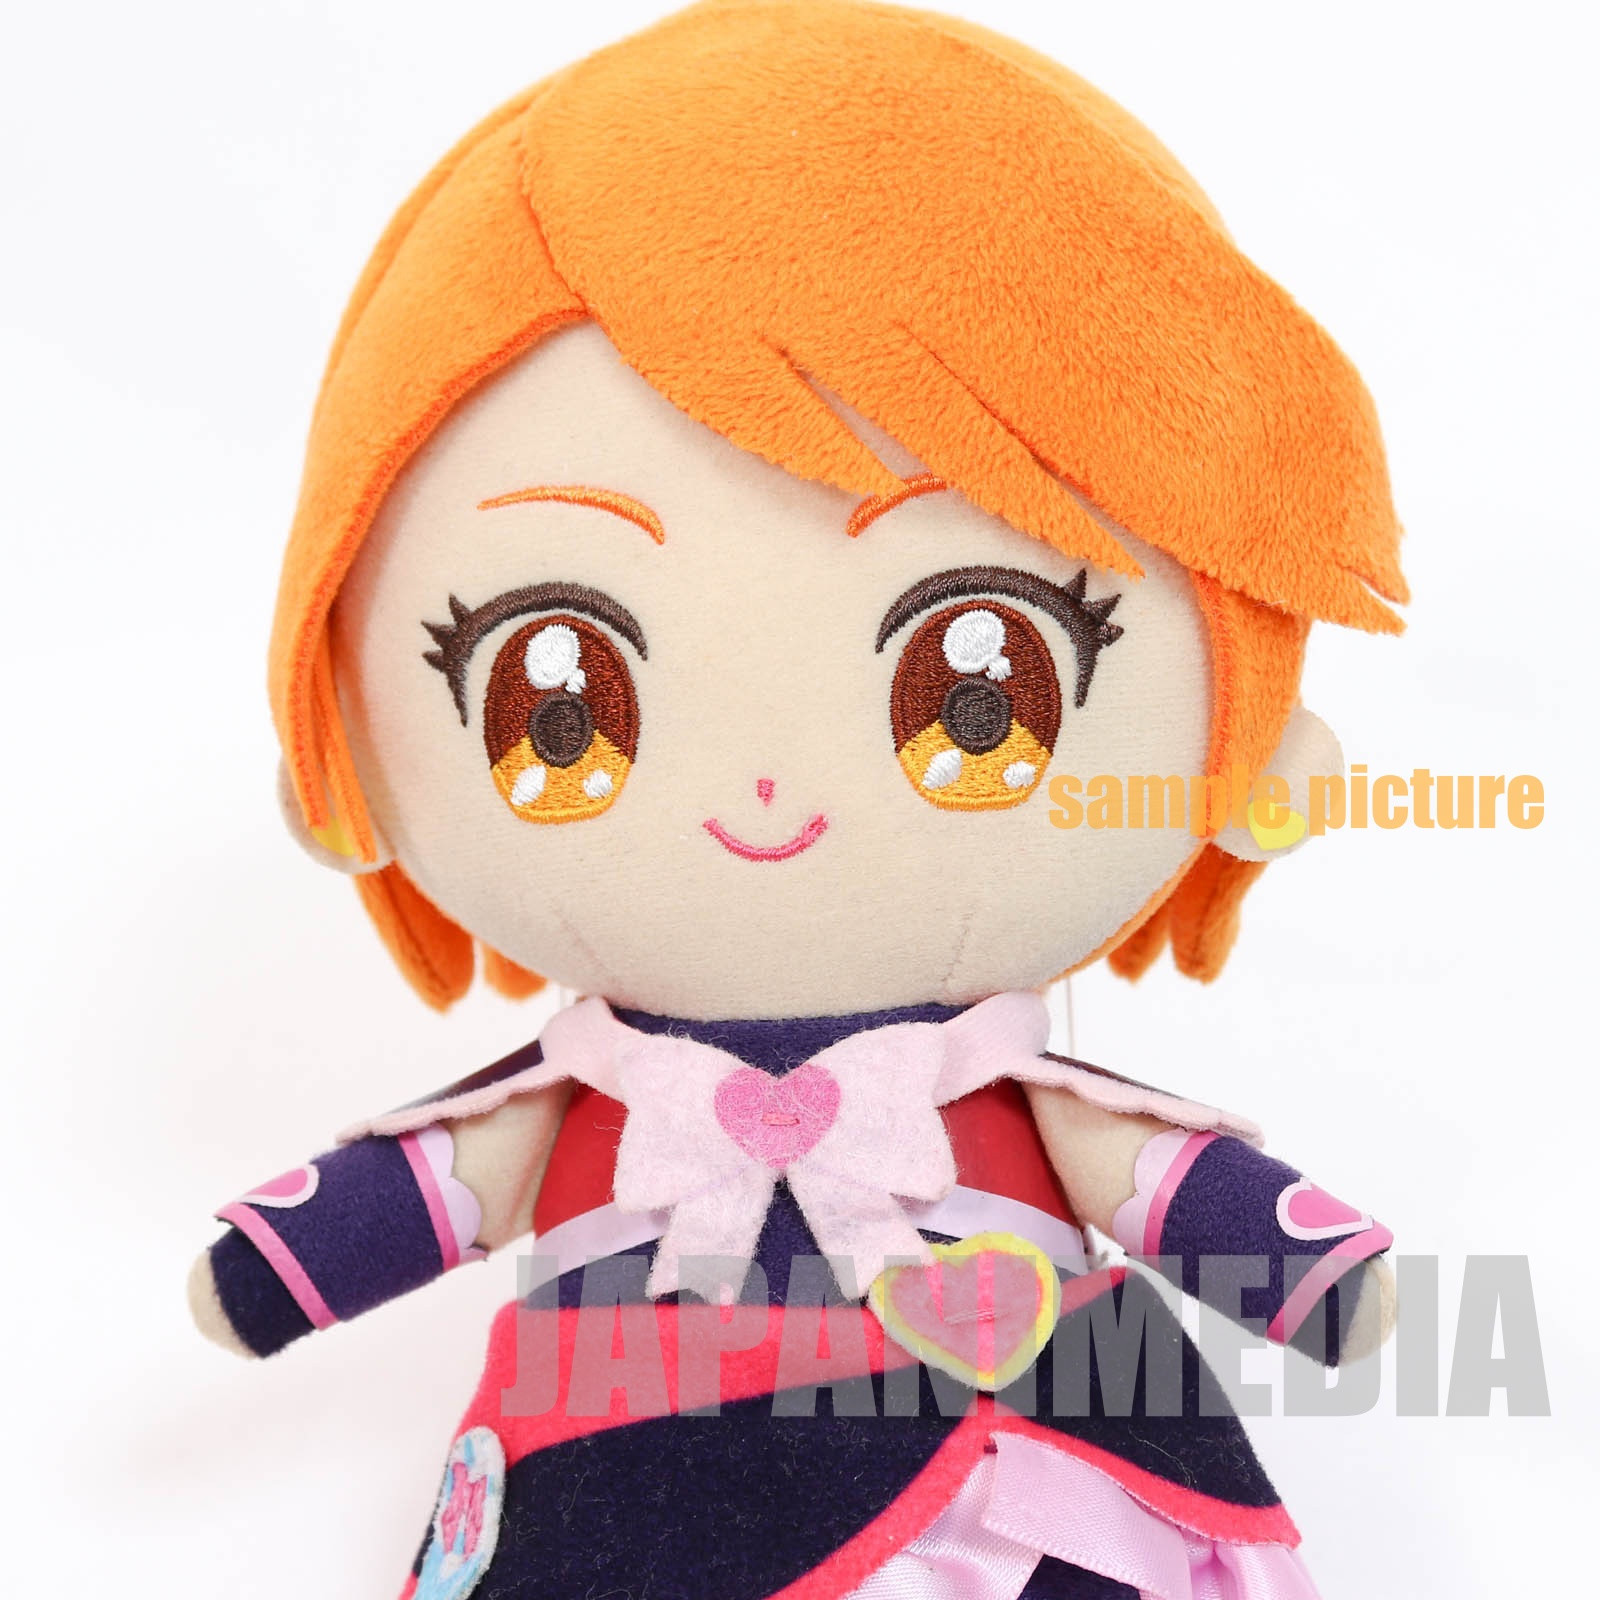 Futari wa Pretty Cure Cure Black Cure Friends Plush doll JAPAN ANIME 2